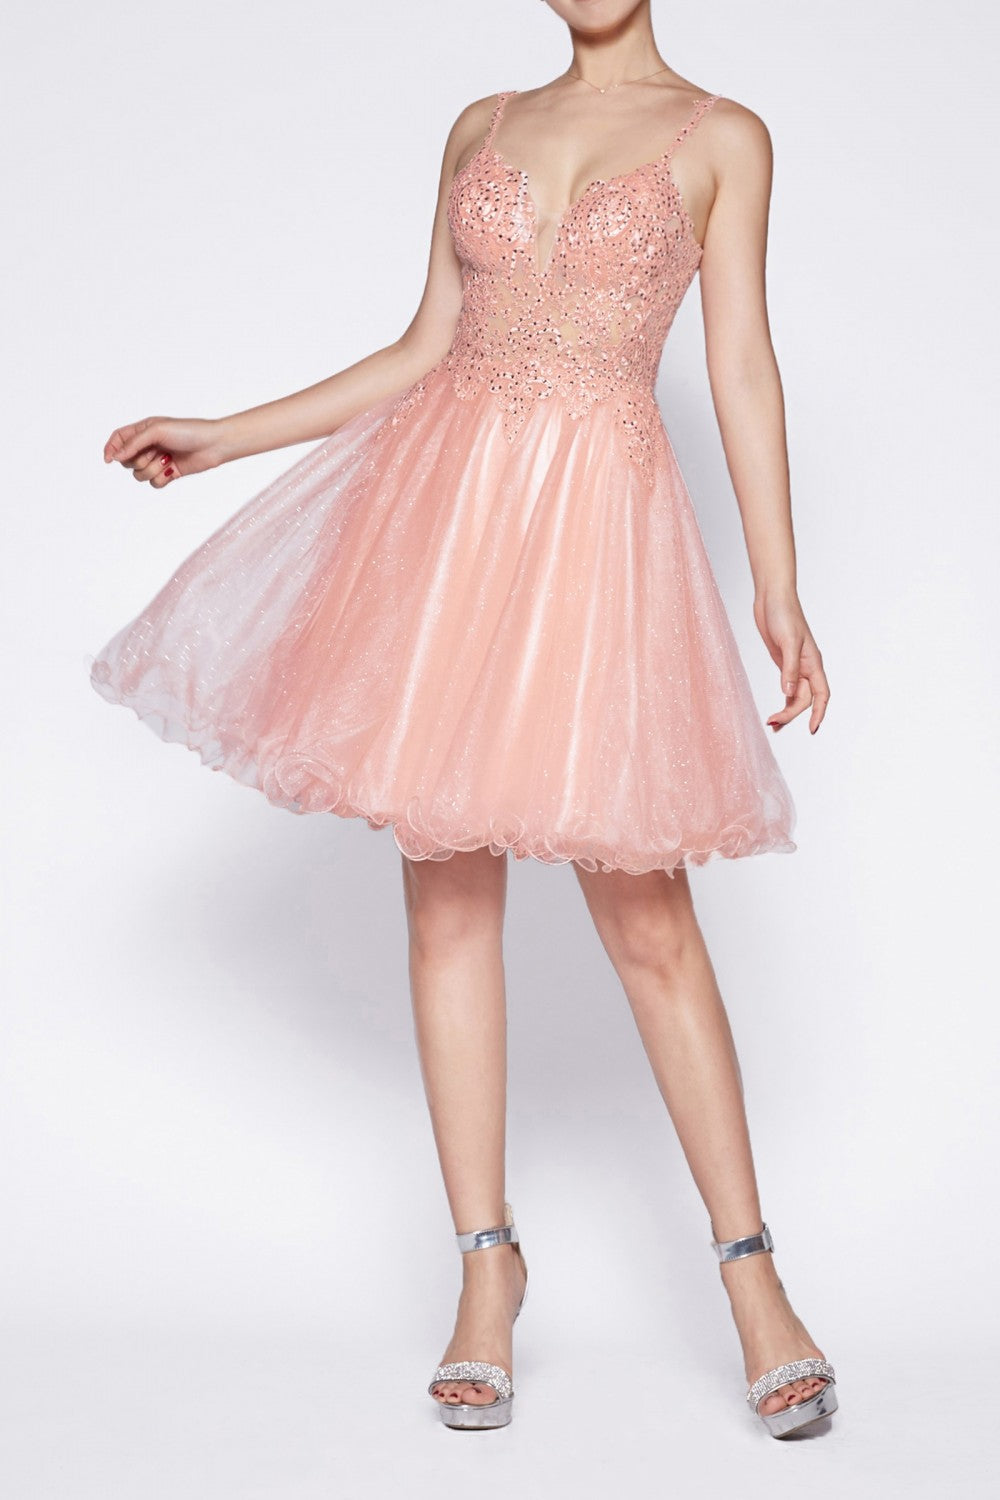 A-Line Short Dress With Glitter Tulle And Jewled Lace Bodice